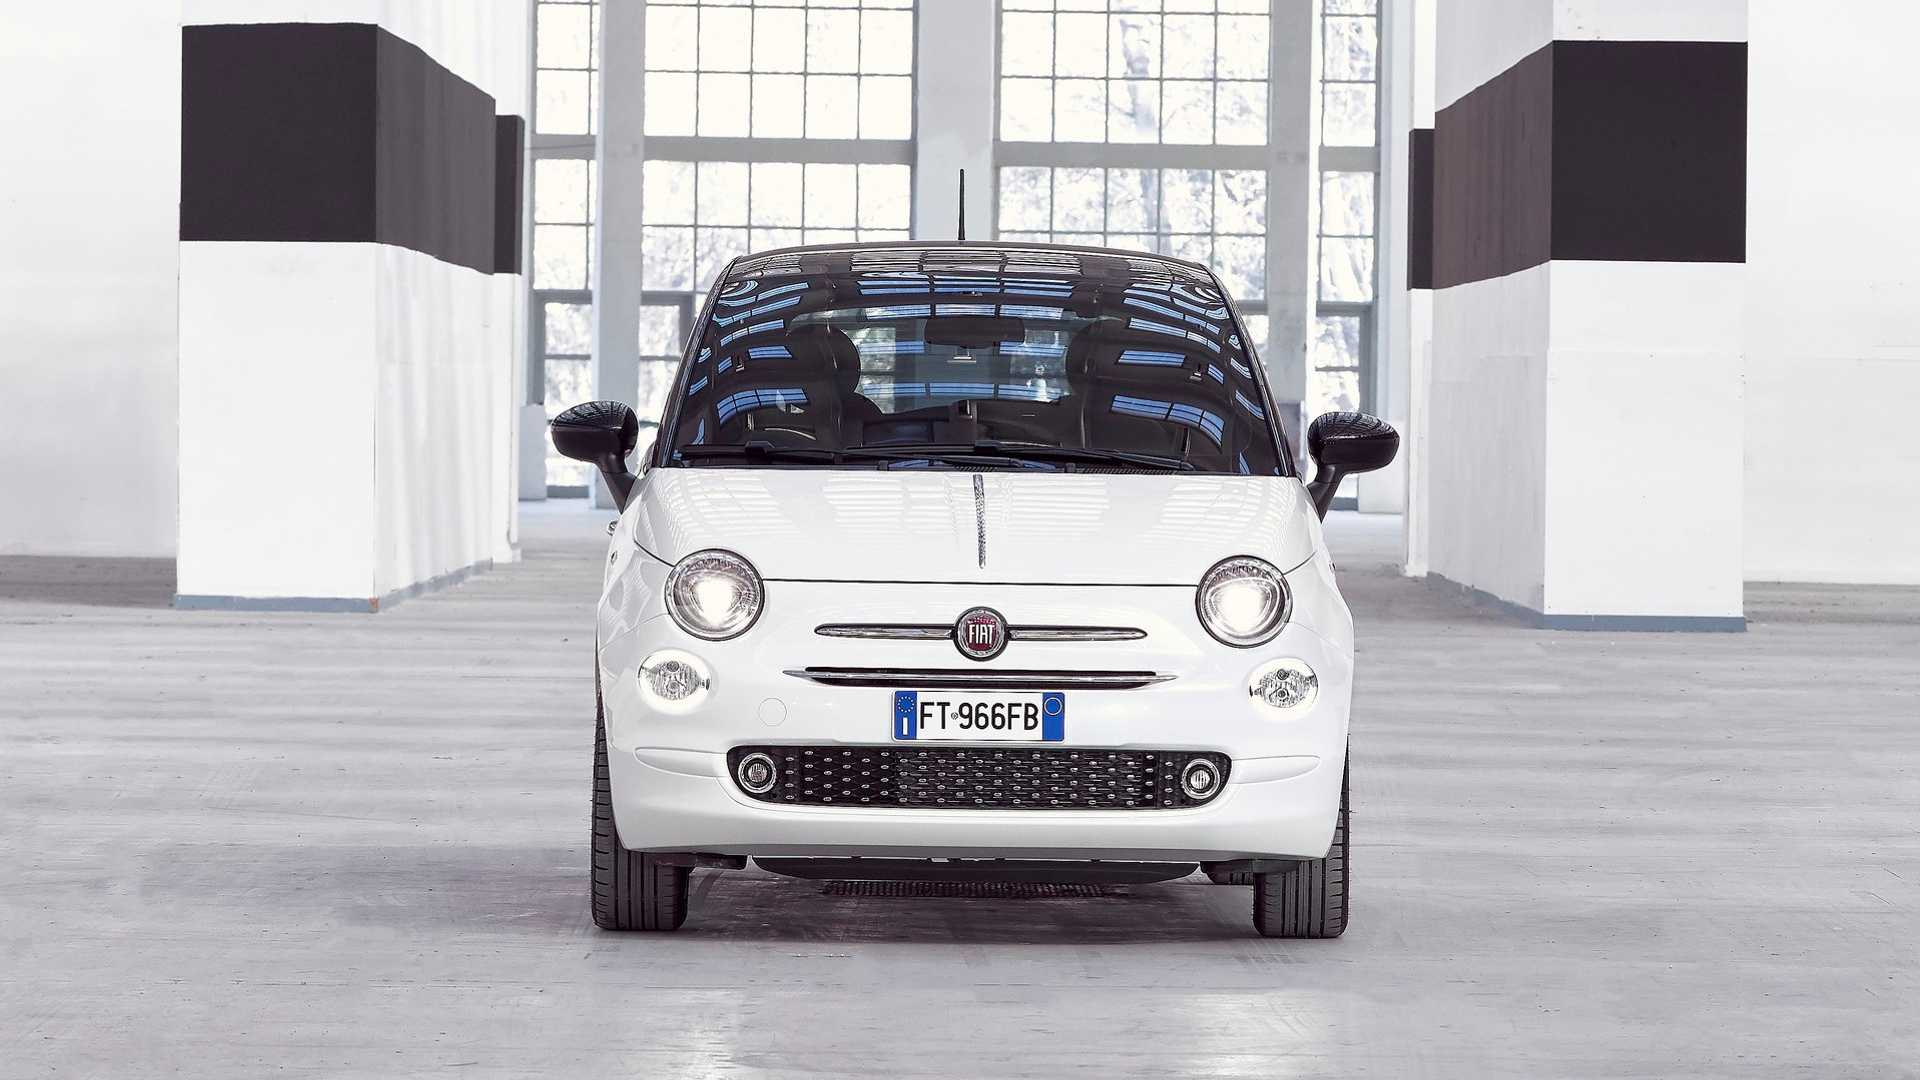 Fiat Marks 120th Anniversary With Special 500, 500X, 500L